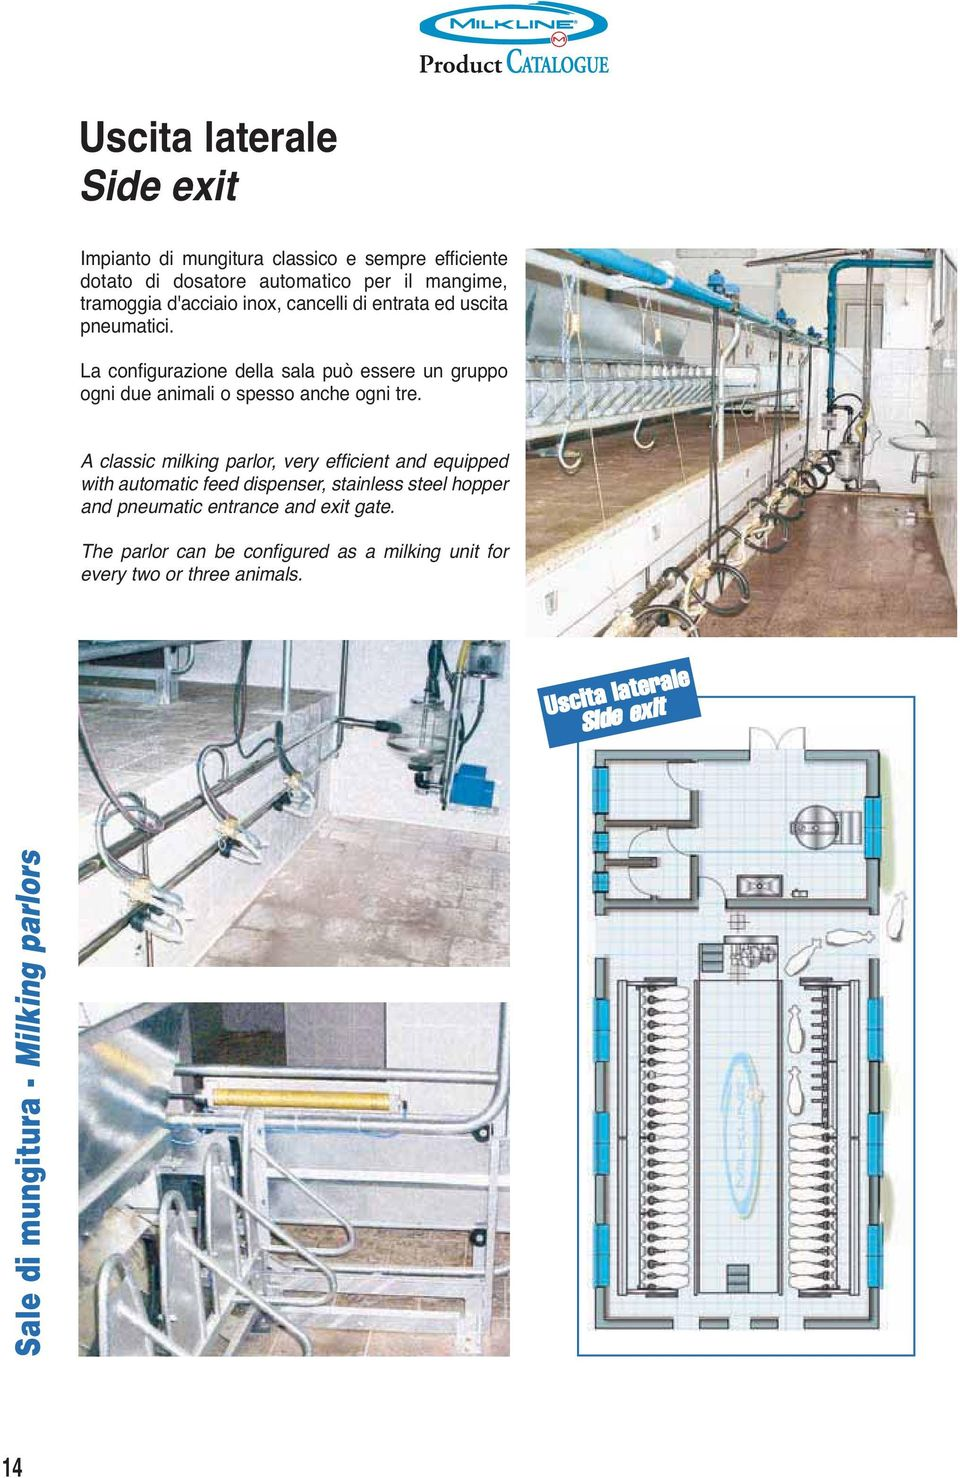 A classic milking parlor, very efficient and equipped with automatic feed dispenser, stainless steel hopper and pneumatic entrance and exit